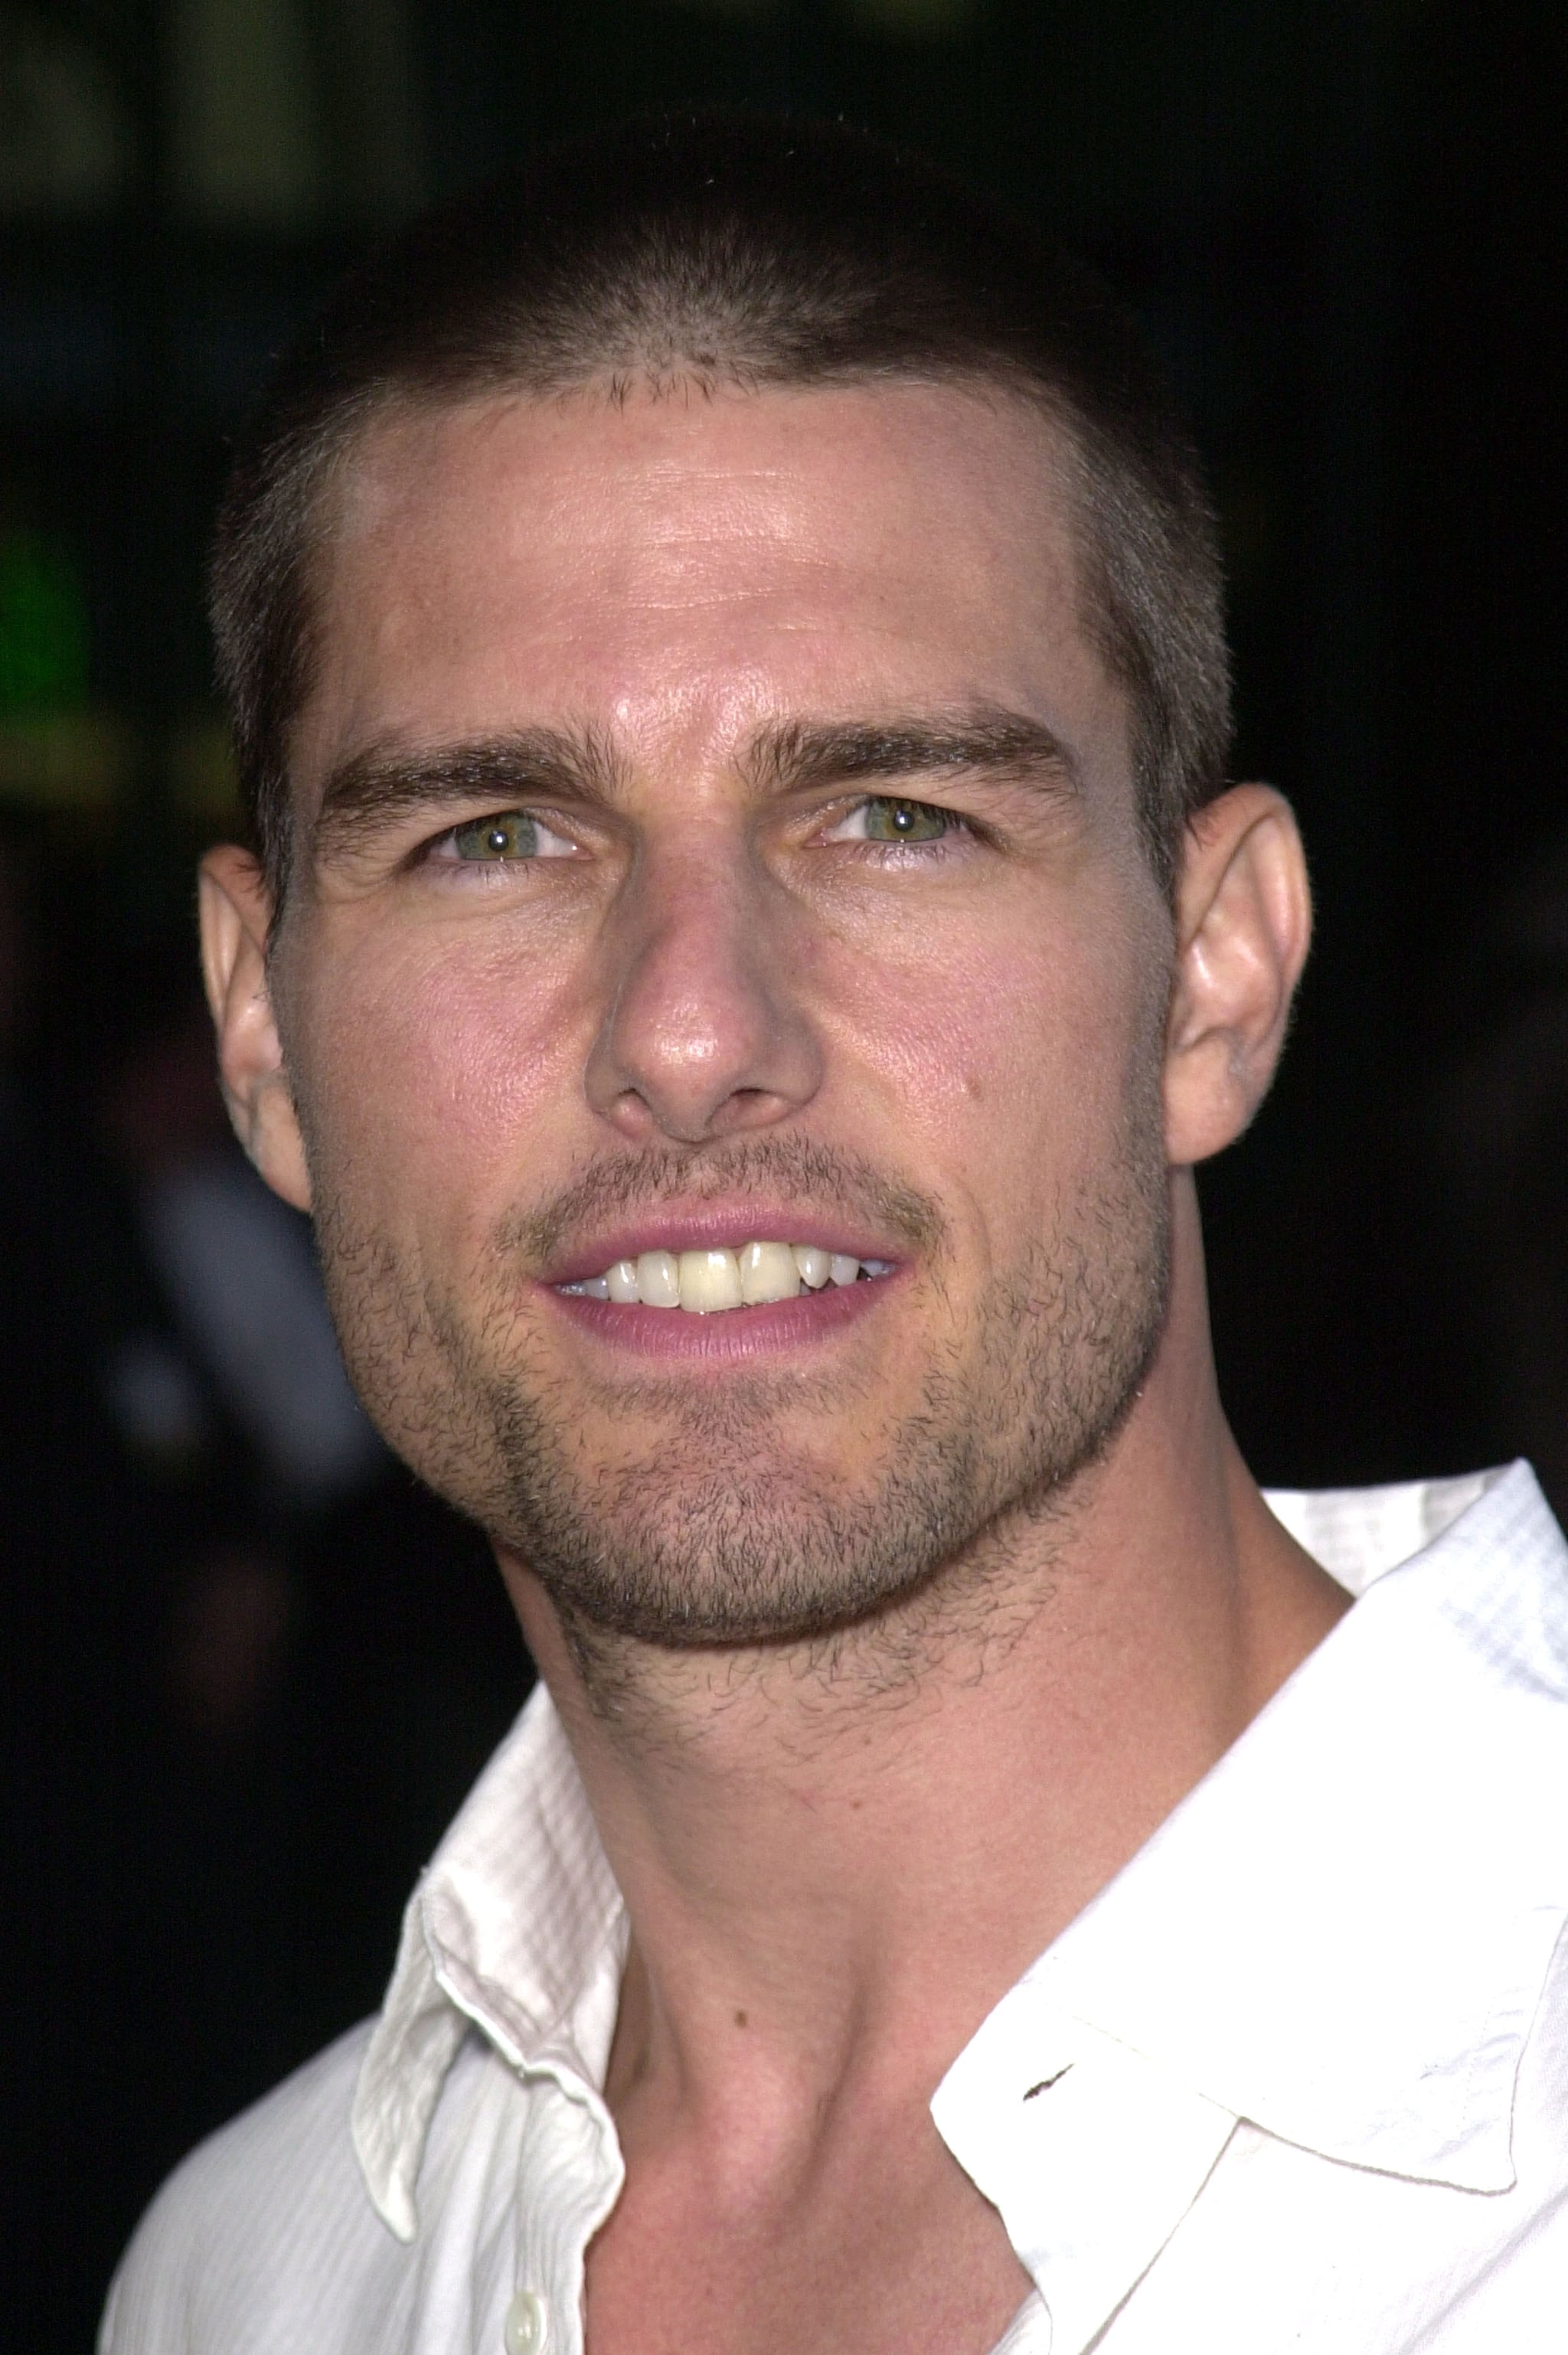 Tom Cruise looked sexy with shorter hair for The Others premiere in LA in August 2001.